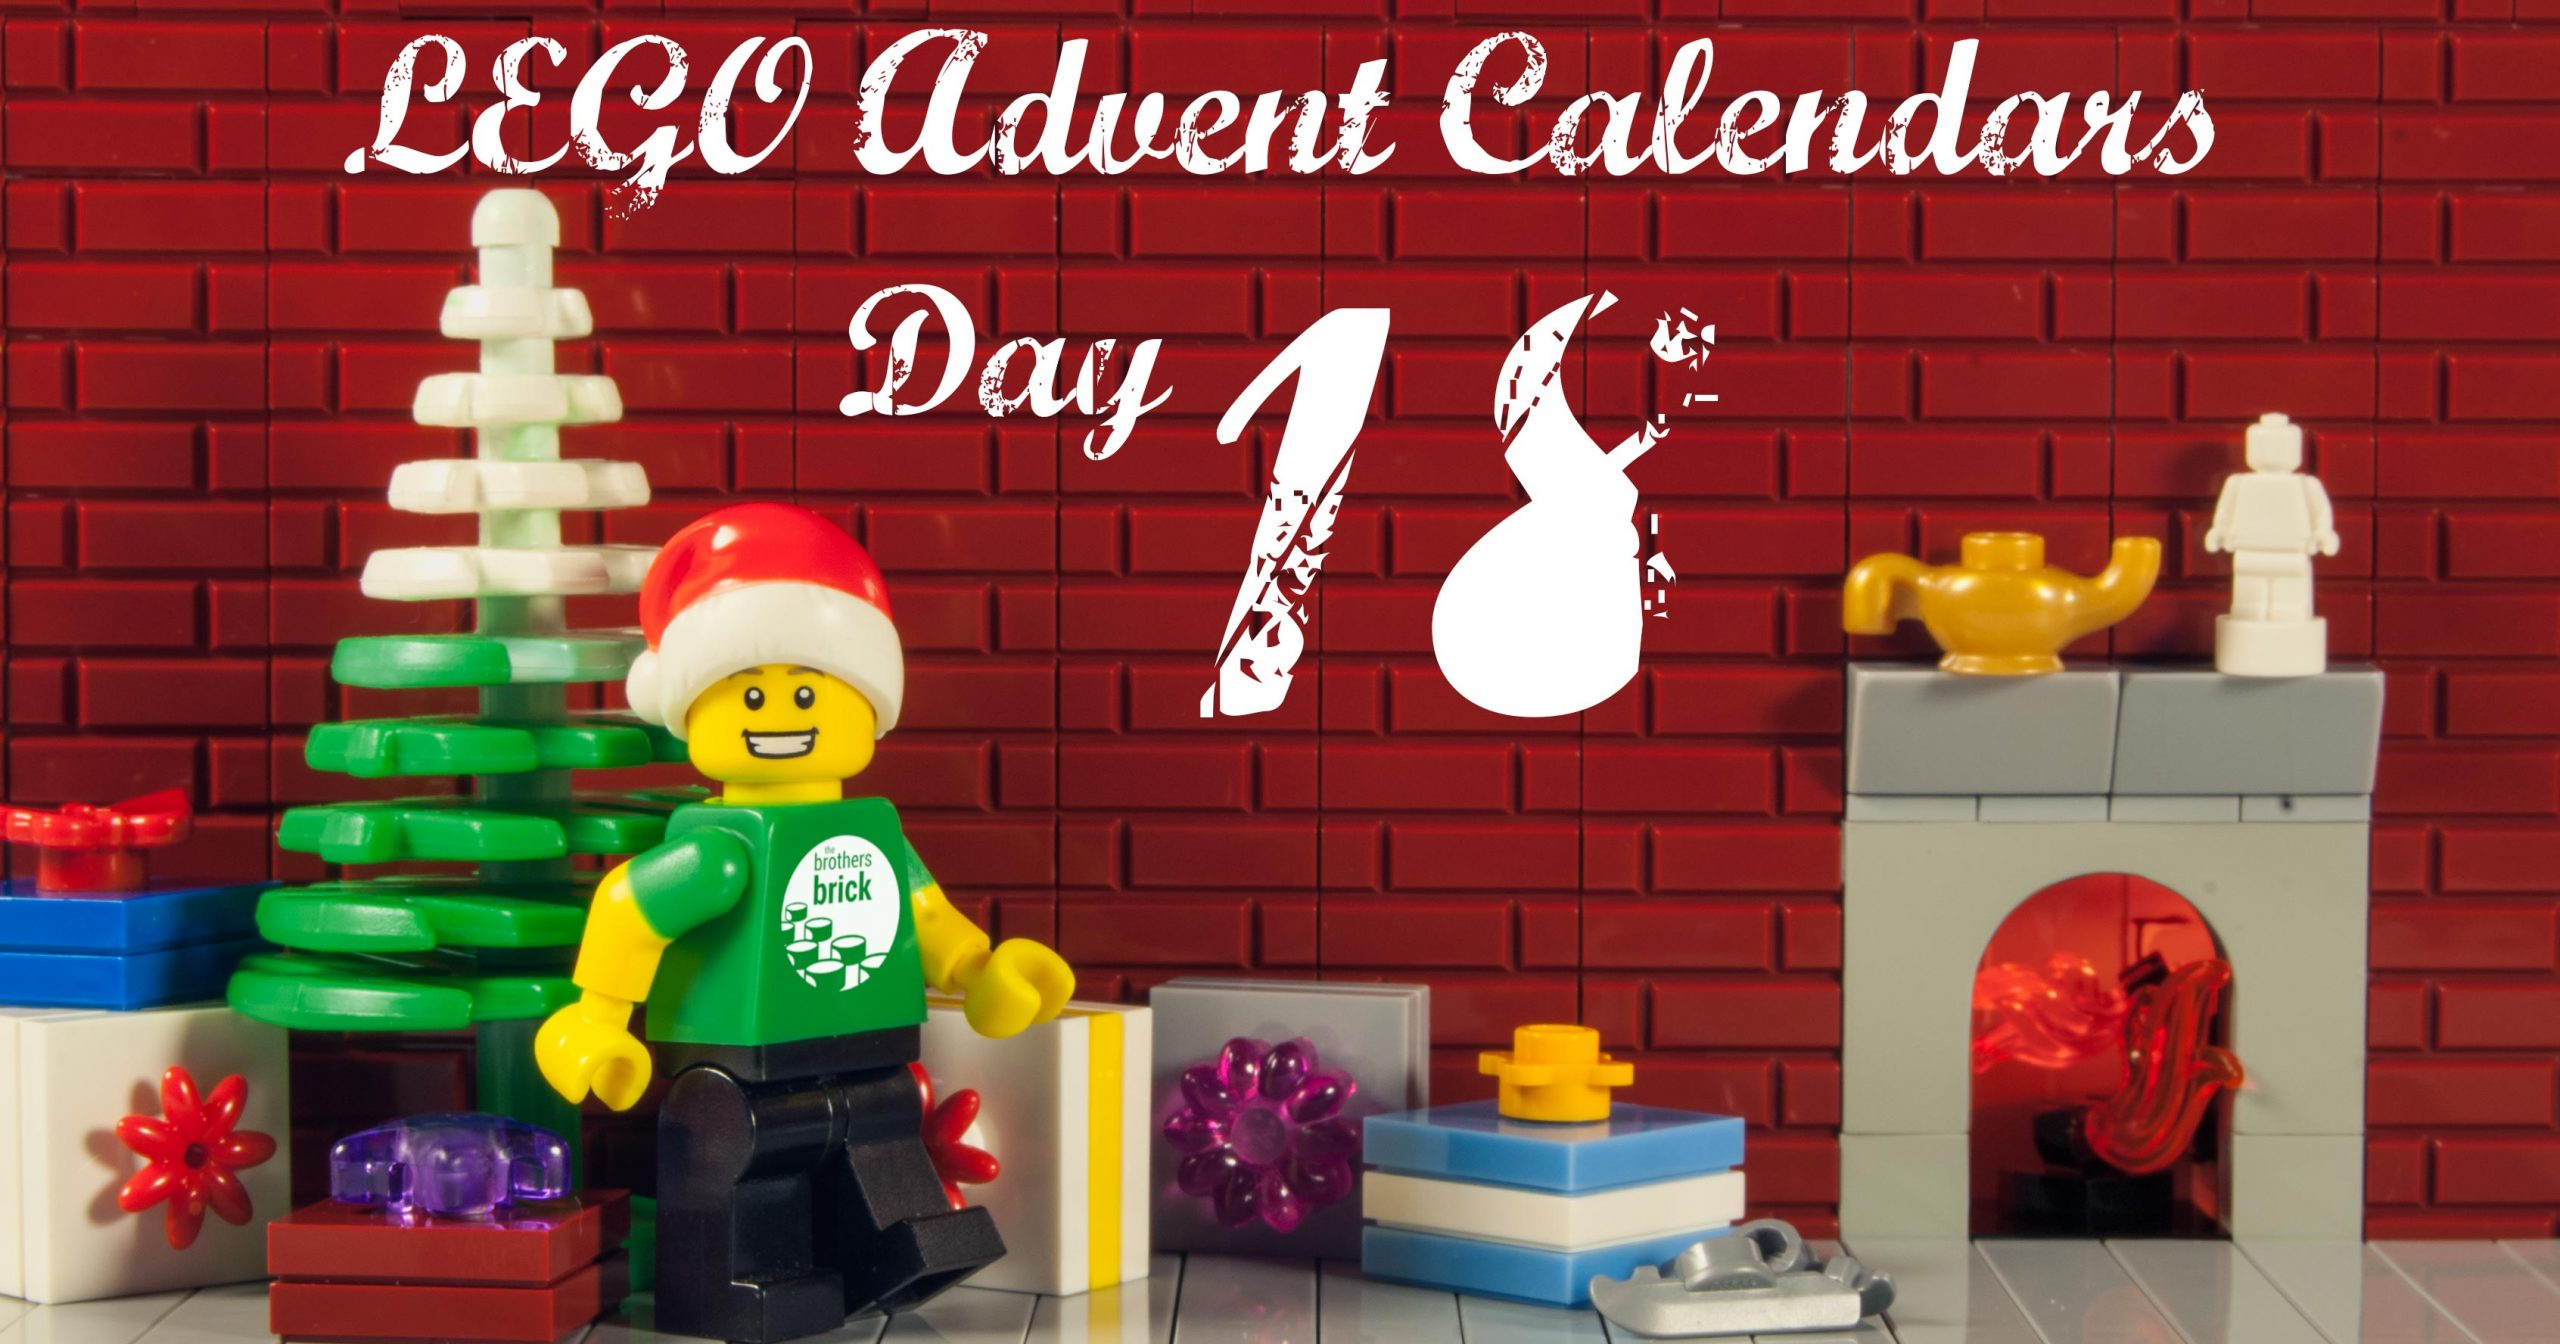 lego advent calendars cover day 18 the brothers brick. Black Bedroom Furniture Sets. Home Design Ideas